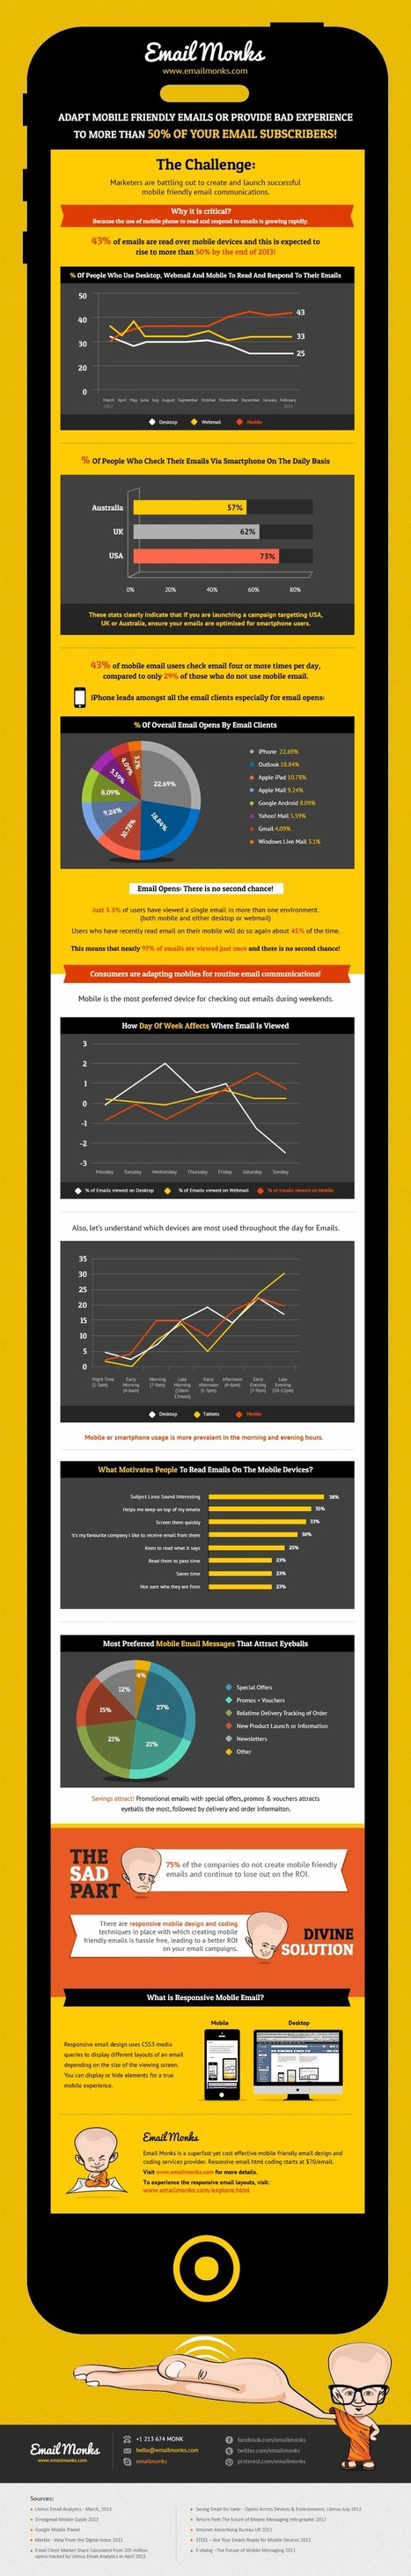 Infographic: The Challenge Of Email Success In A Fragmented Mobile World - Email Monks | www.Facebook.com.Retro.Social.Media | Scoop.it